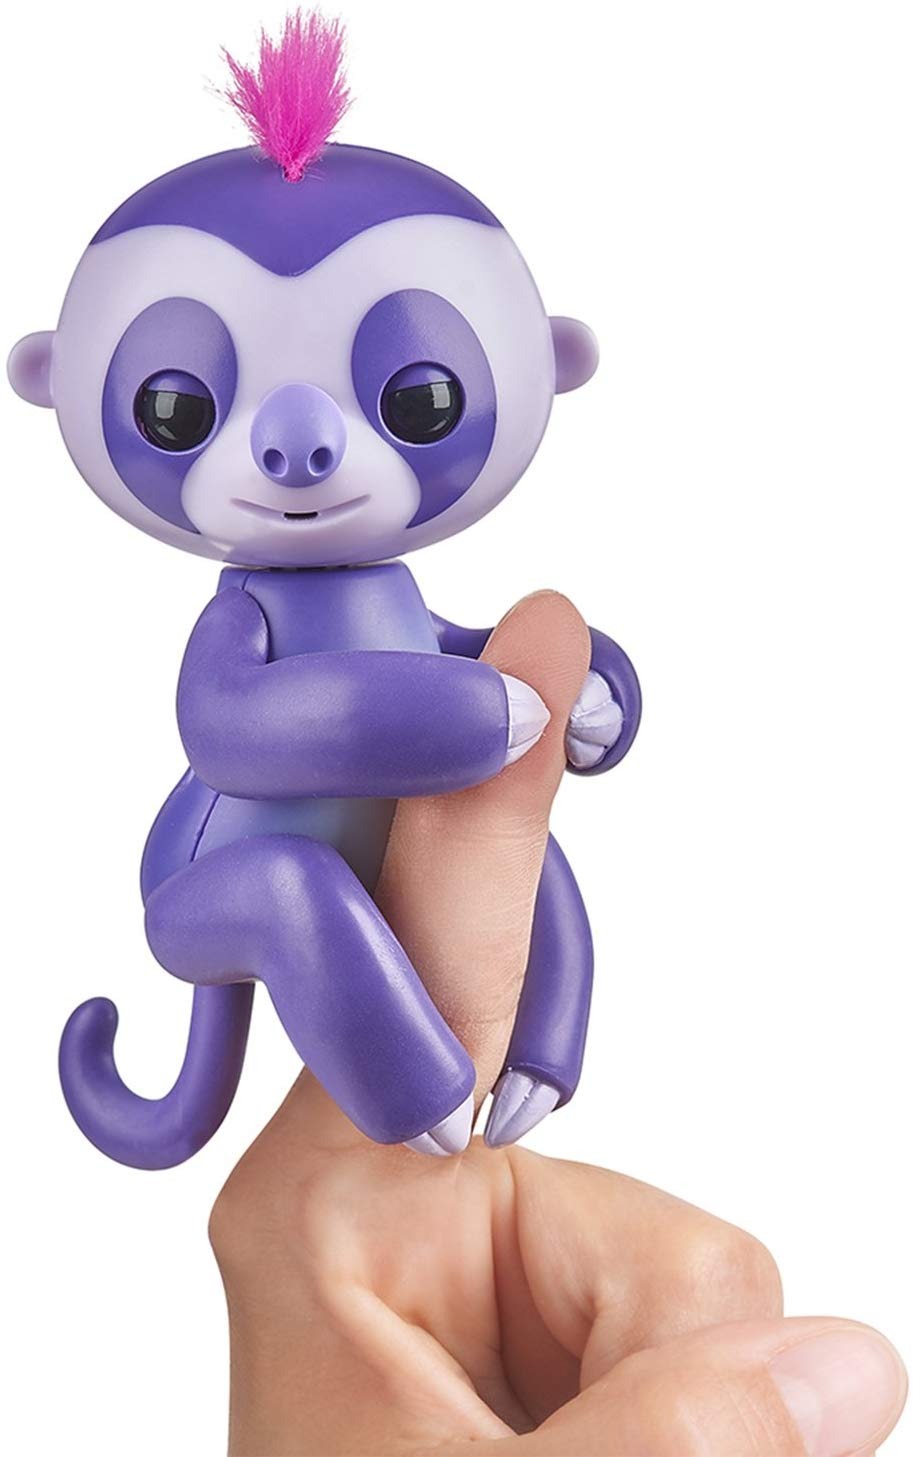 Fingerlings Baby Sloth - Marge (Purple) - Interactive Baby Pet - by WowWee puppet